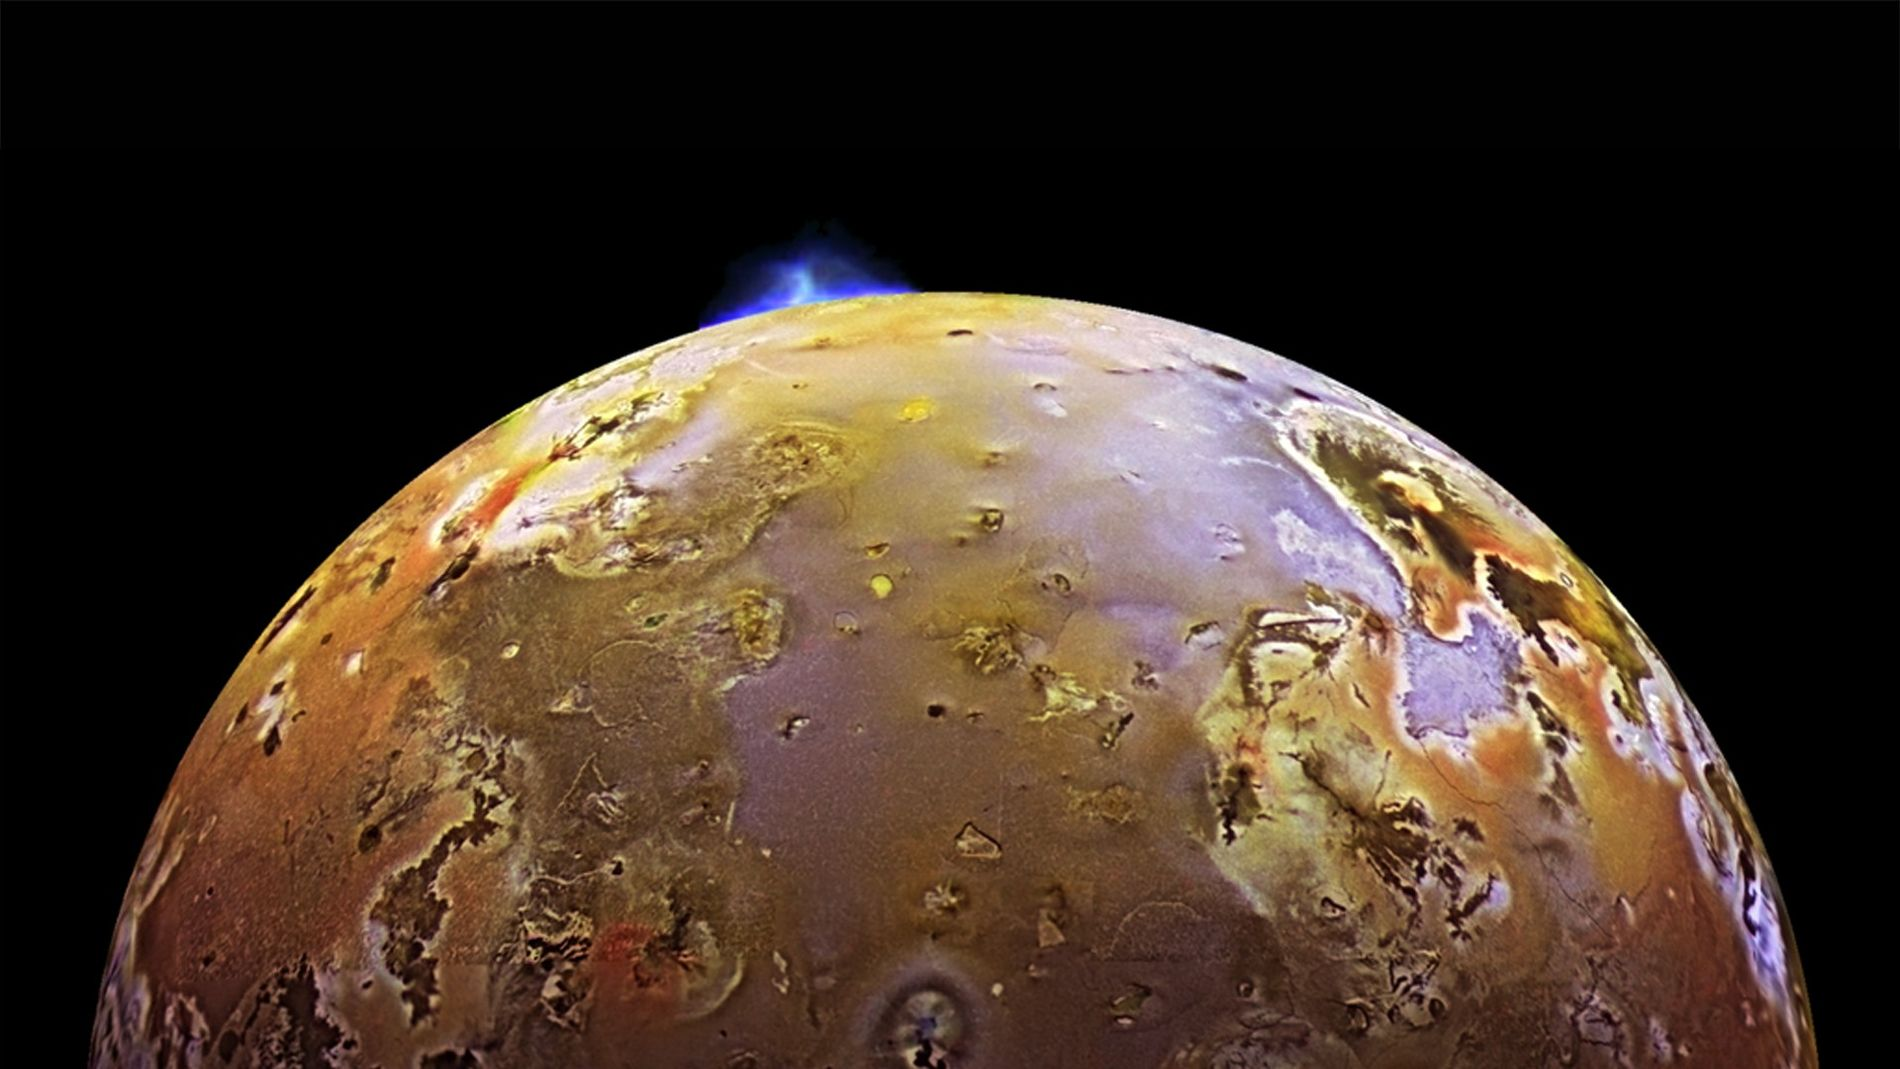 A volcanic plume erupts from the surface of Io, Jupiter's third largest moon and the most ...